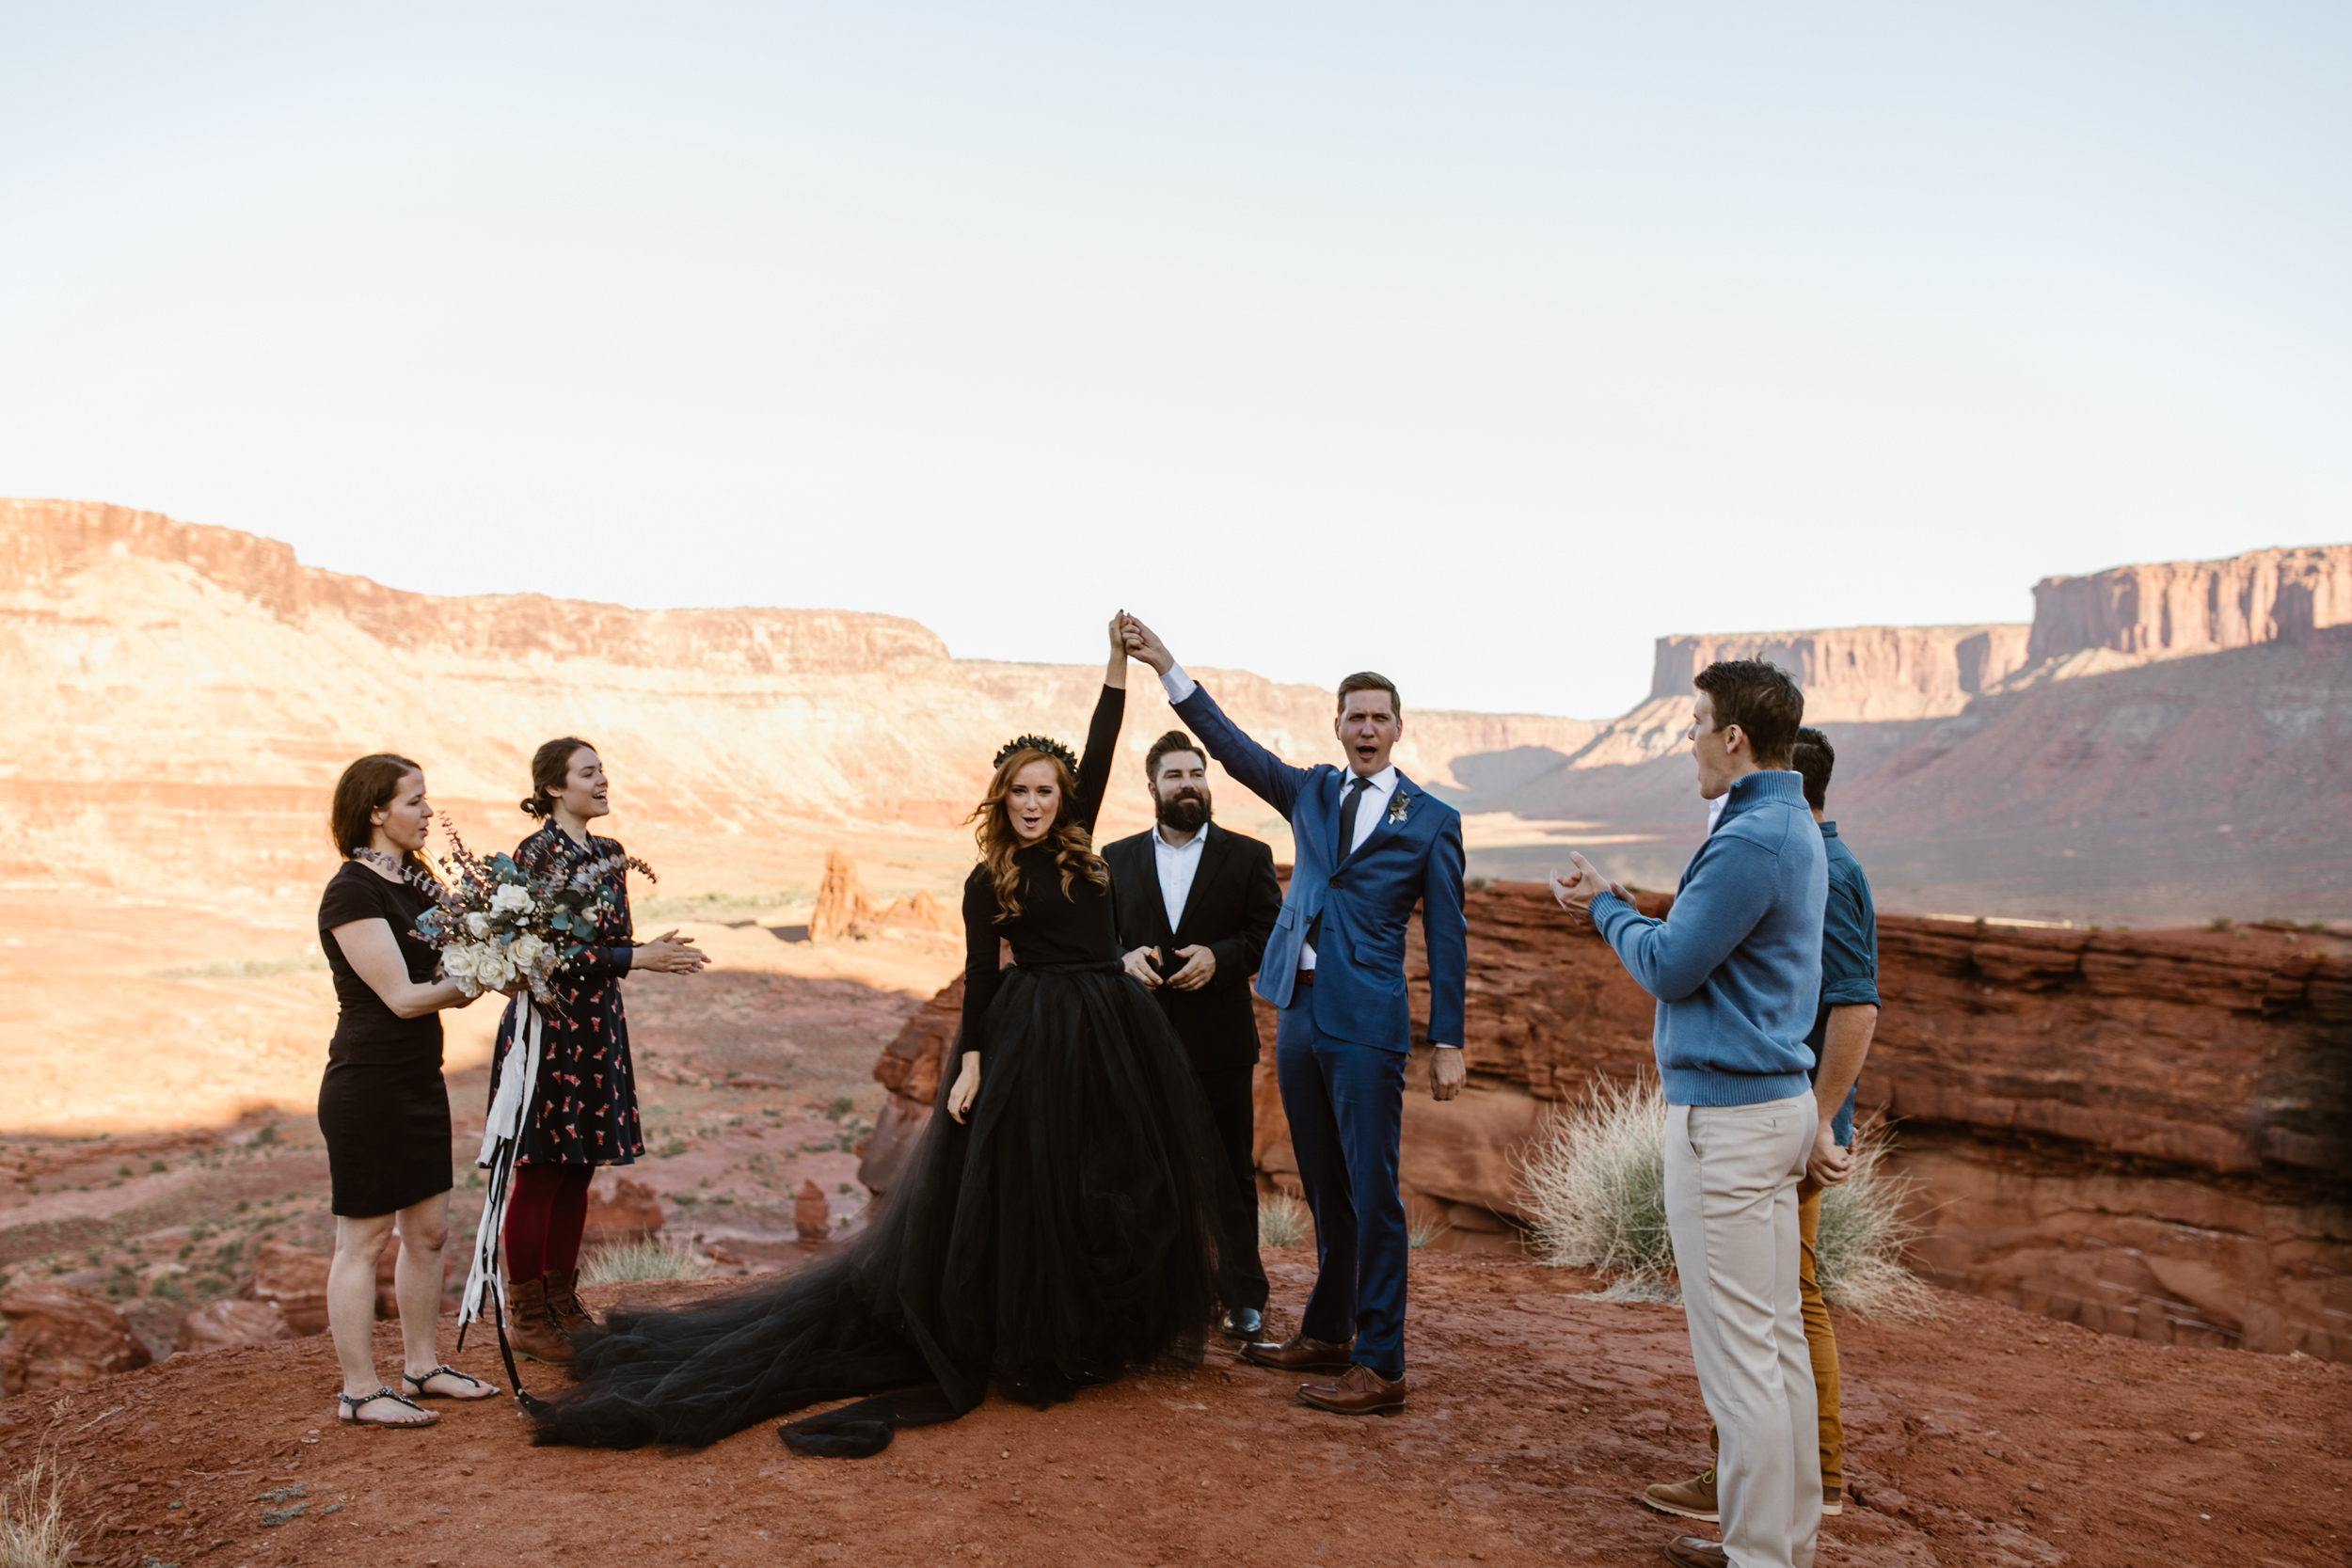 5 Reasons You Should Consider A Black Wedding Dress For Your Adventure Elopement Moab Elopement Photographer Adventure Wedding Elopement Photographers In Moab Yosemite And Beyond The Hearnes